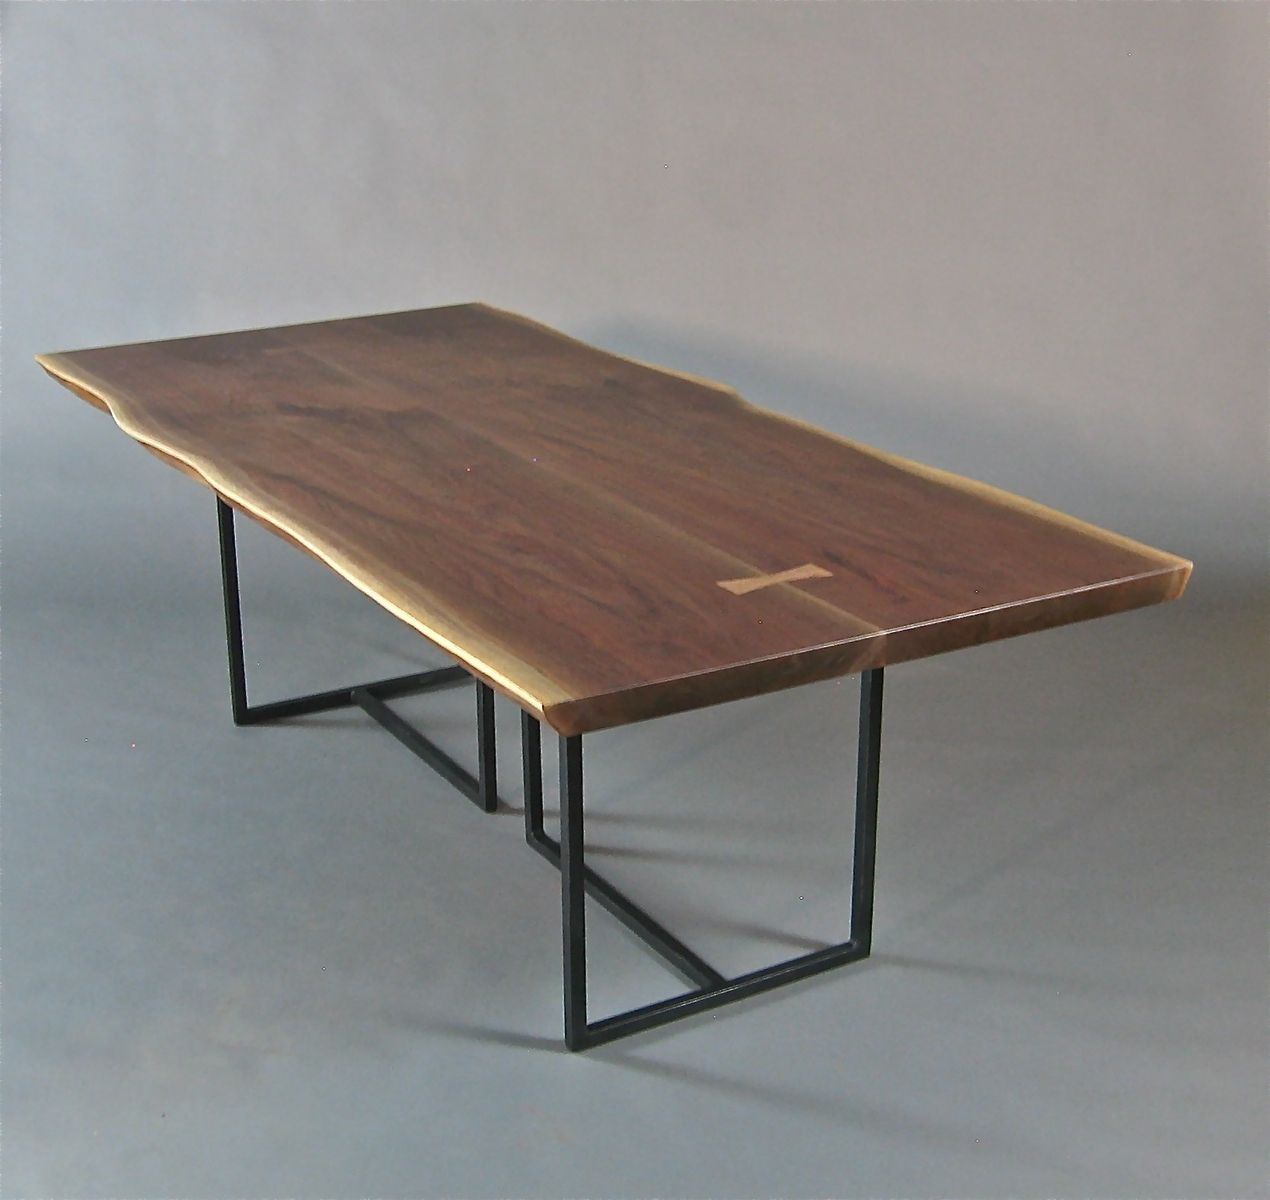 Walnut live edge dining table - Live Edge Tables Handmade Walnut Slab Live Edge Dining Table By Bernwood Custom Design